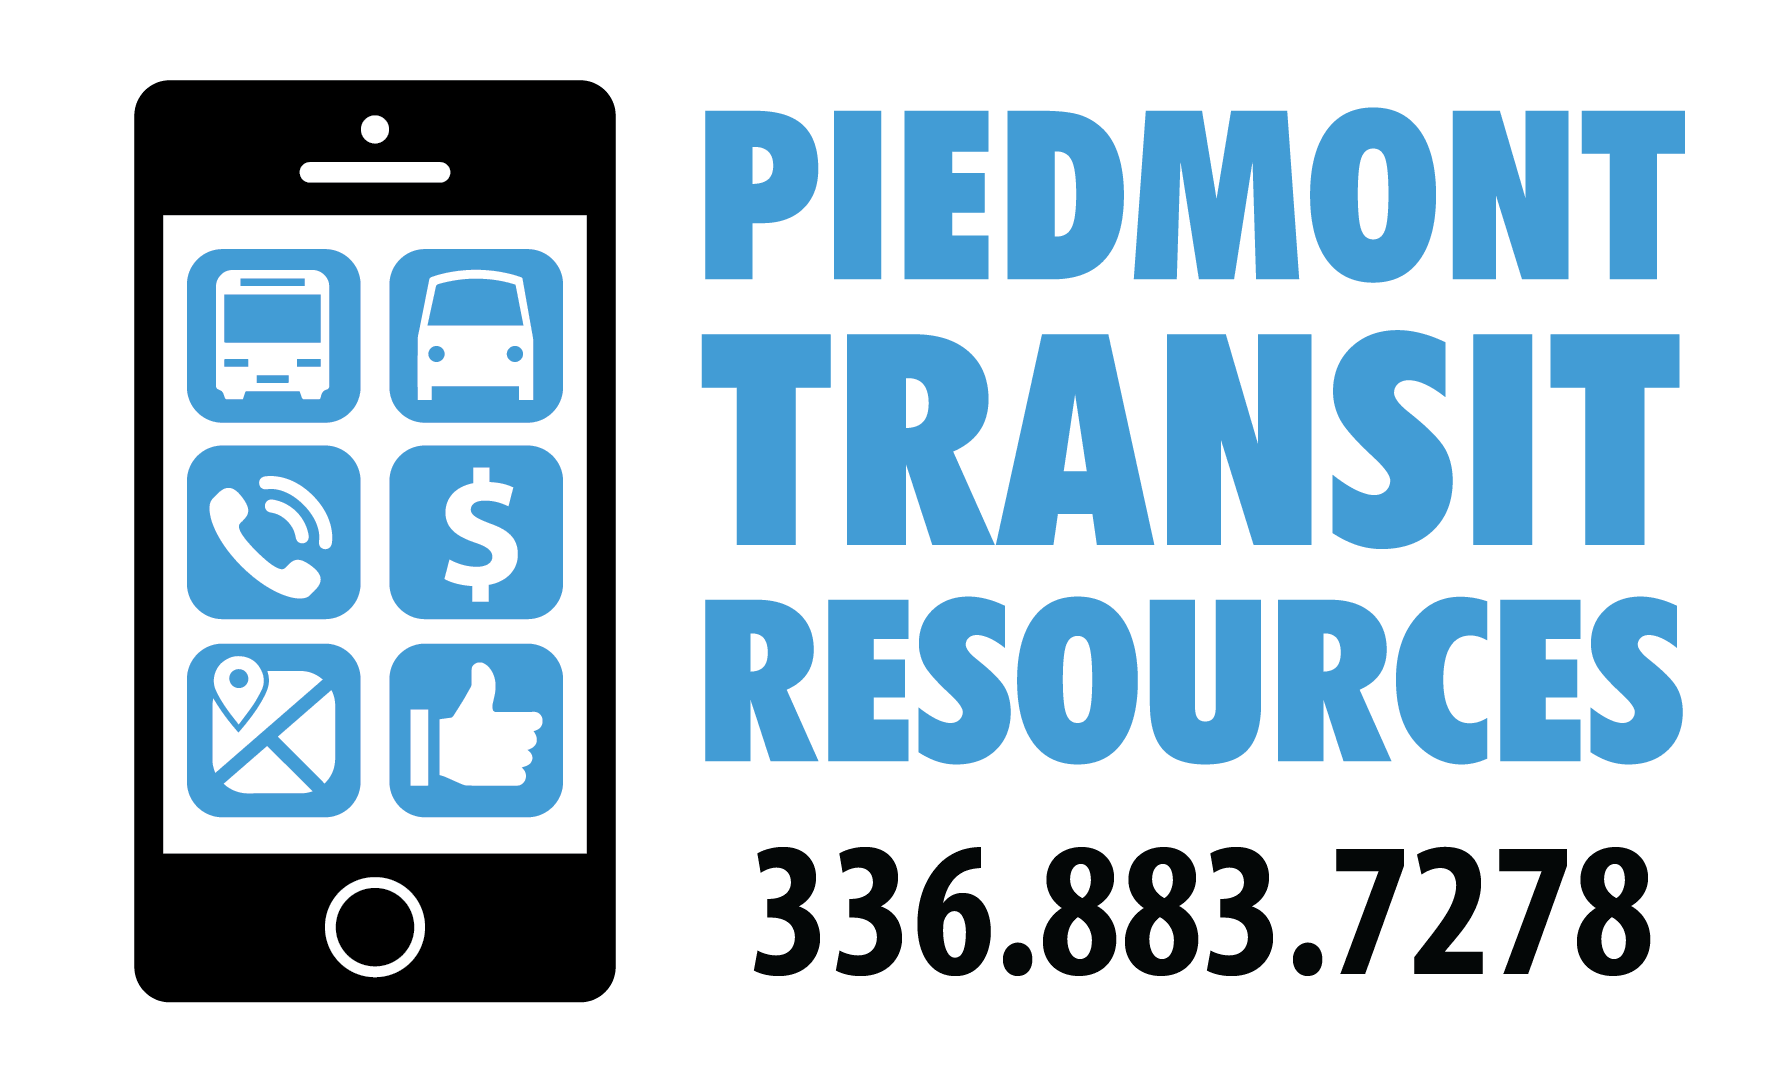 PiedmontTransit Resources